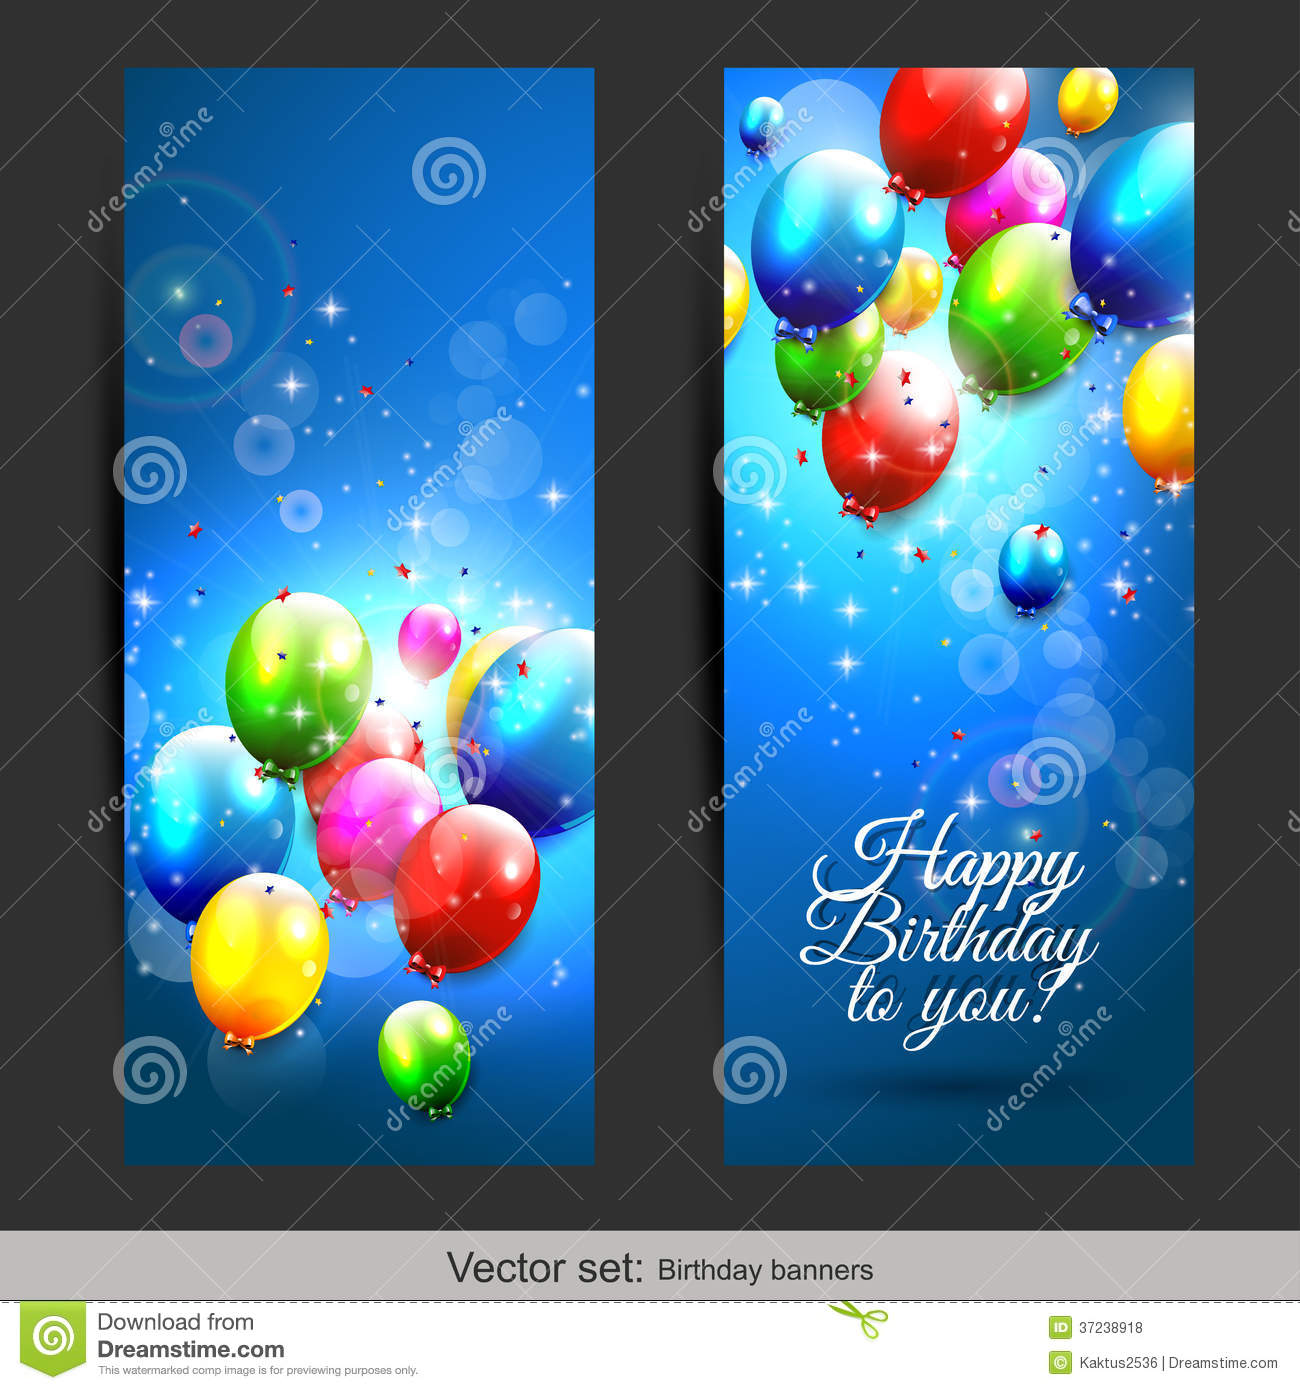 Birthday Balloons Banners Royalty Free Stock Photos - Image: 37238918